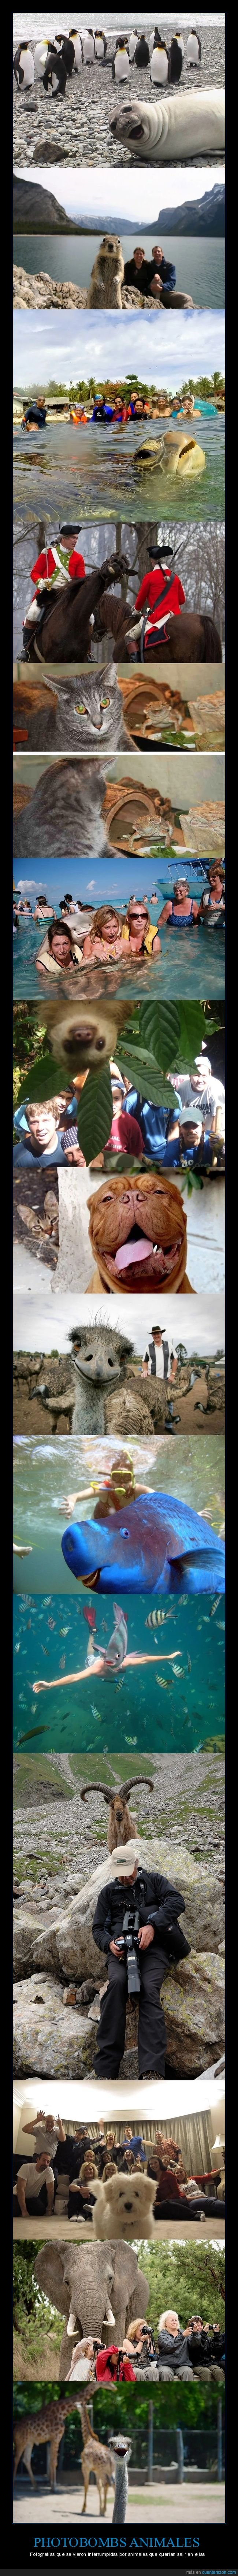 animales,fotos,photobombs